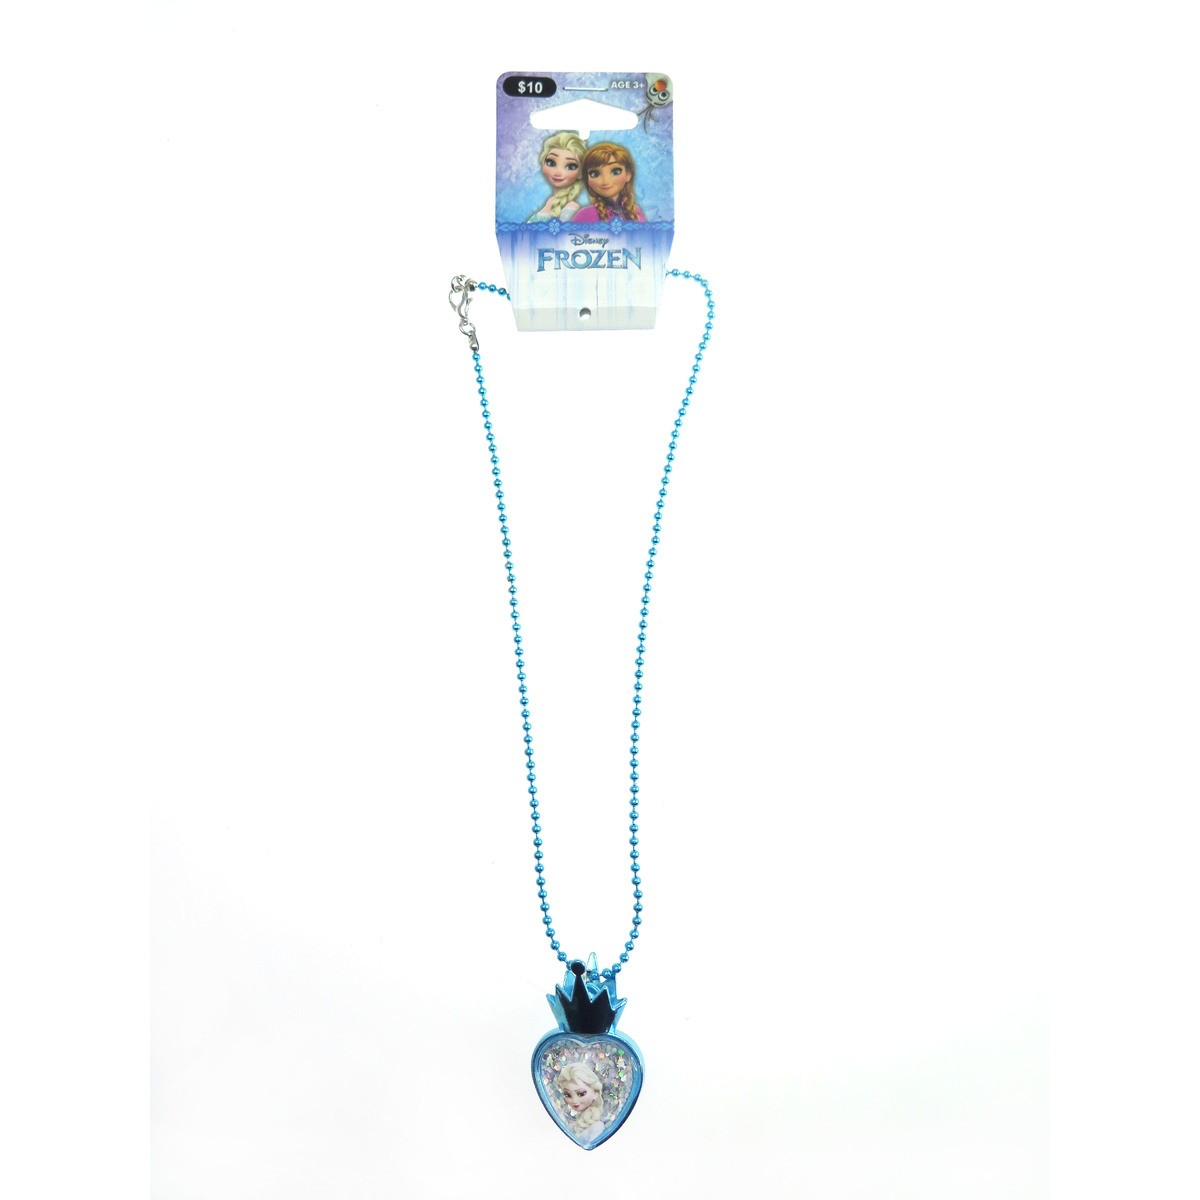 Disney Frozen Heart Necklace Intended For Best And Newest Heart Fan Pendant Necklaces (View 6 of 25)